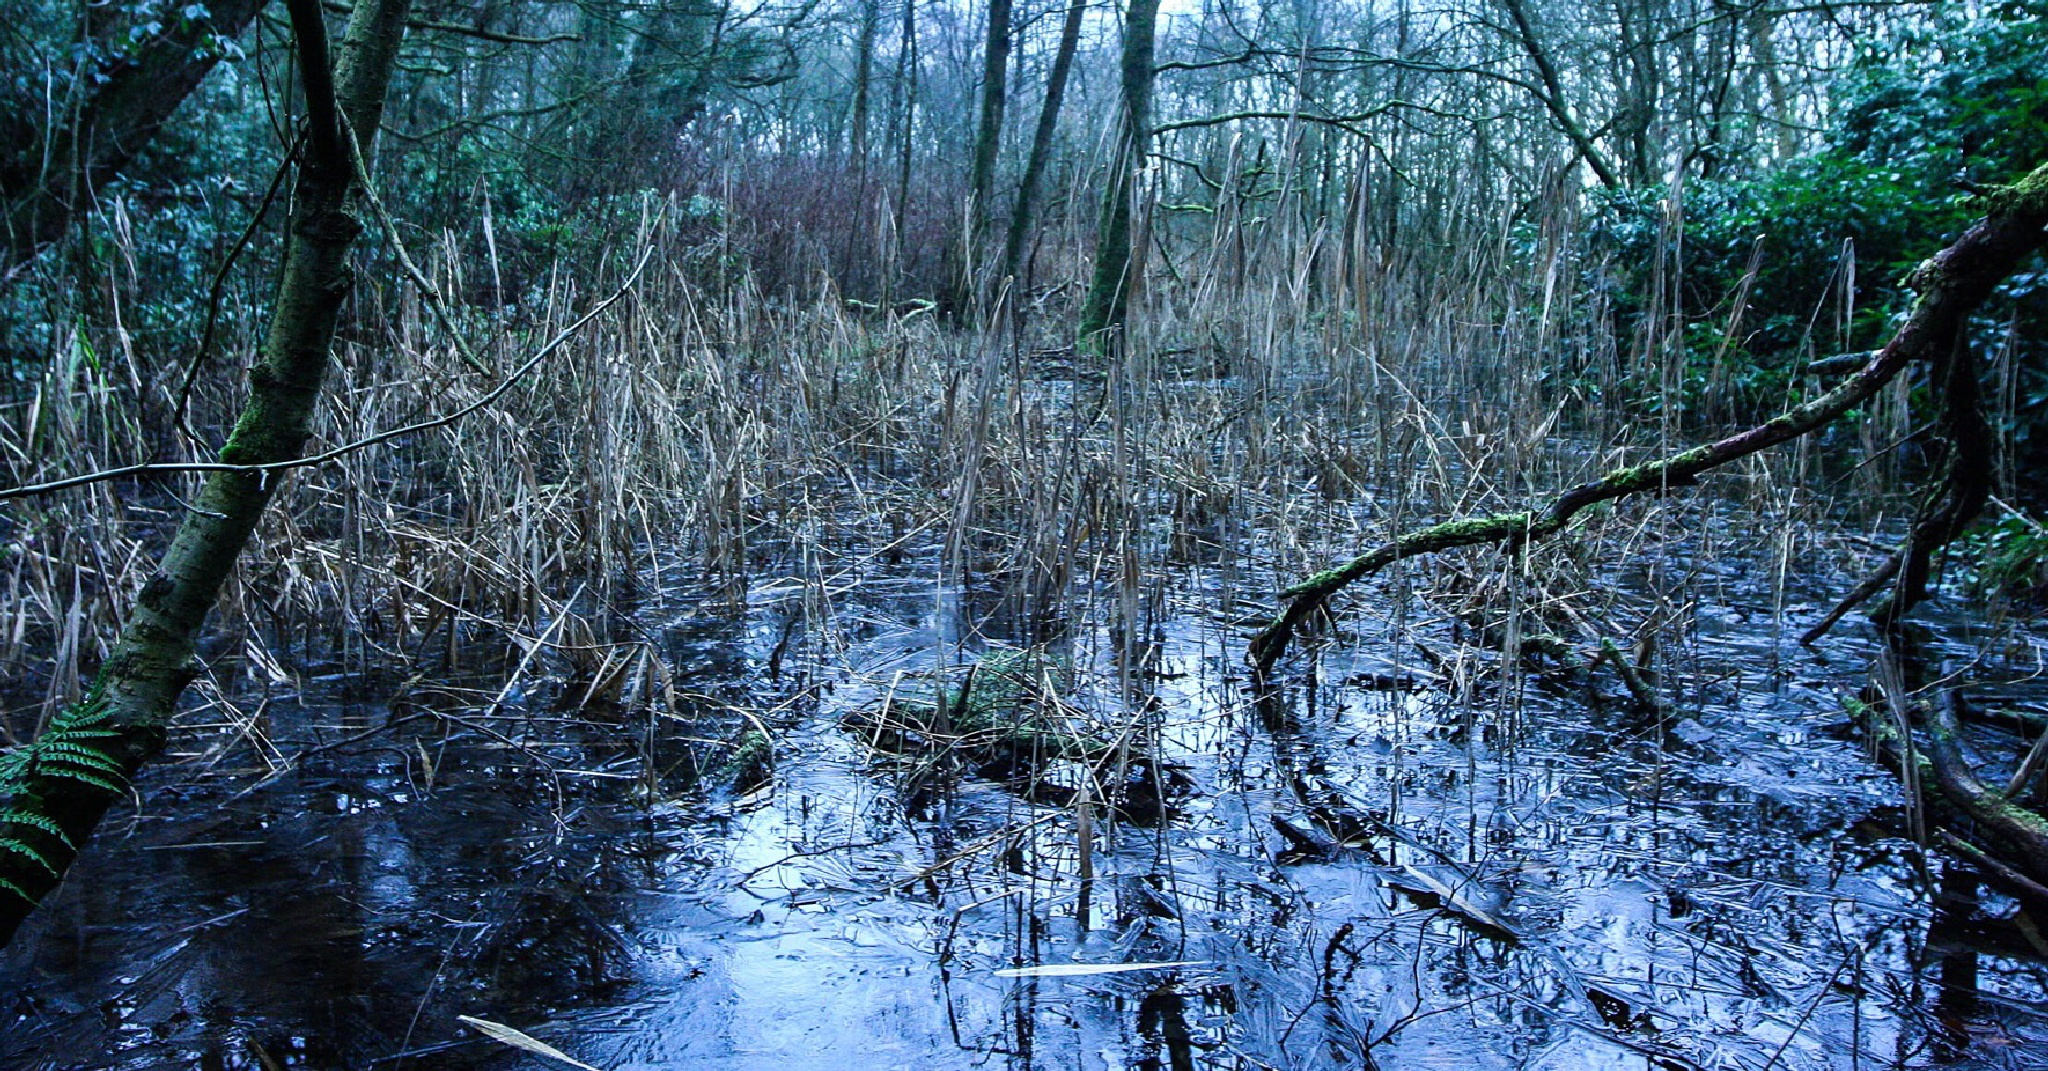 Iced swamp by Michael Grundy